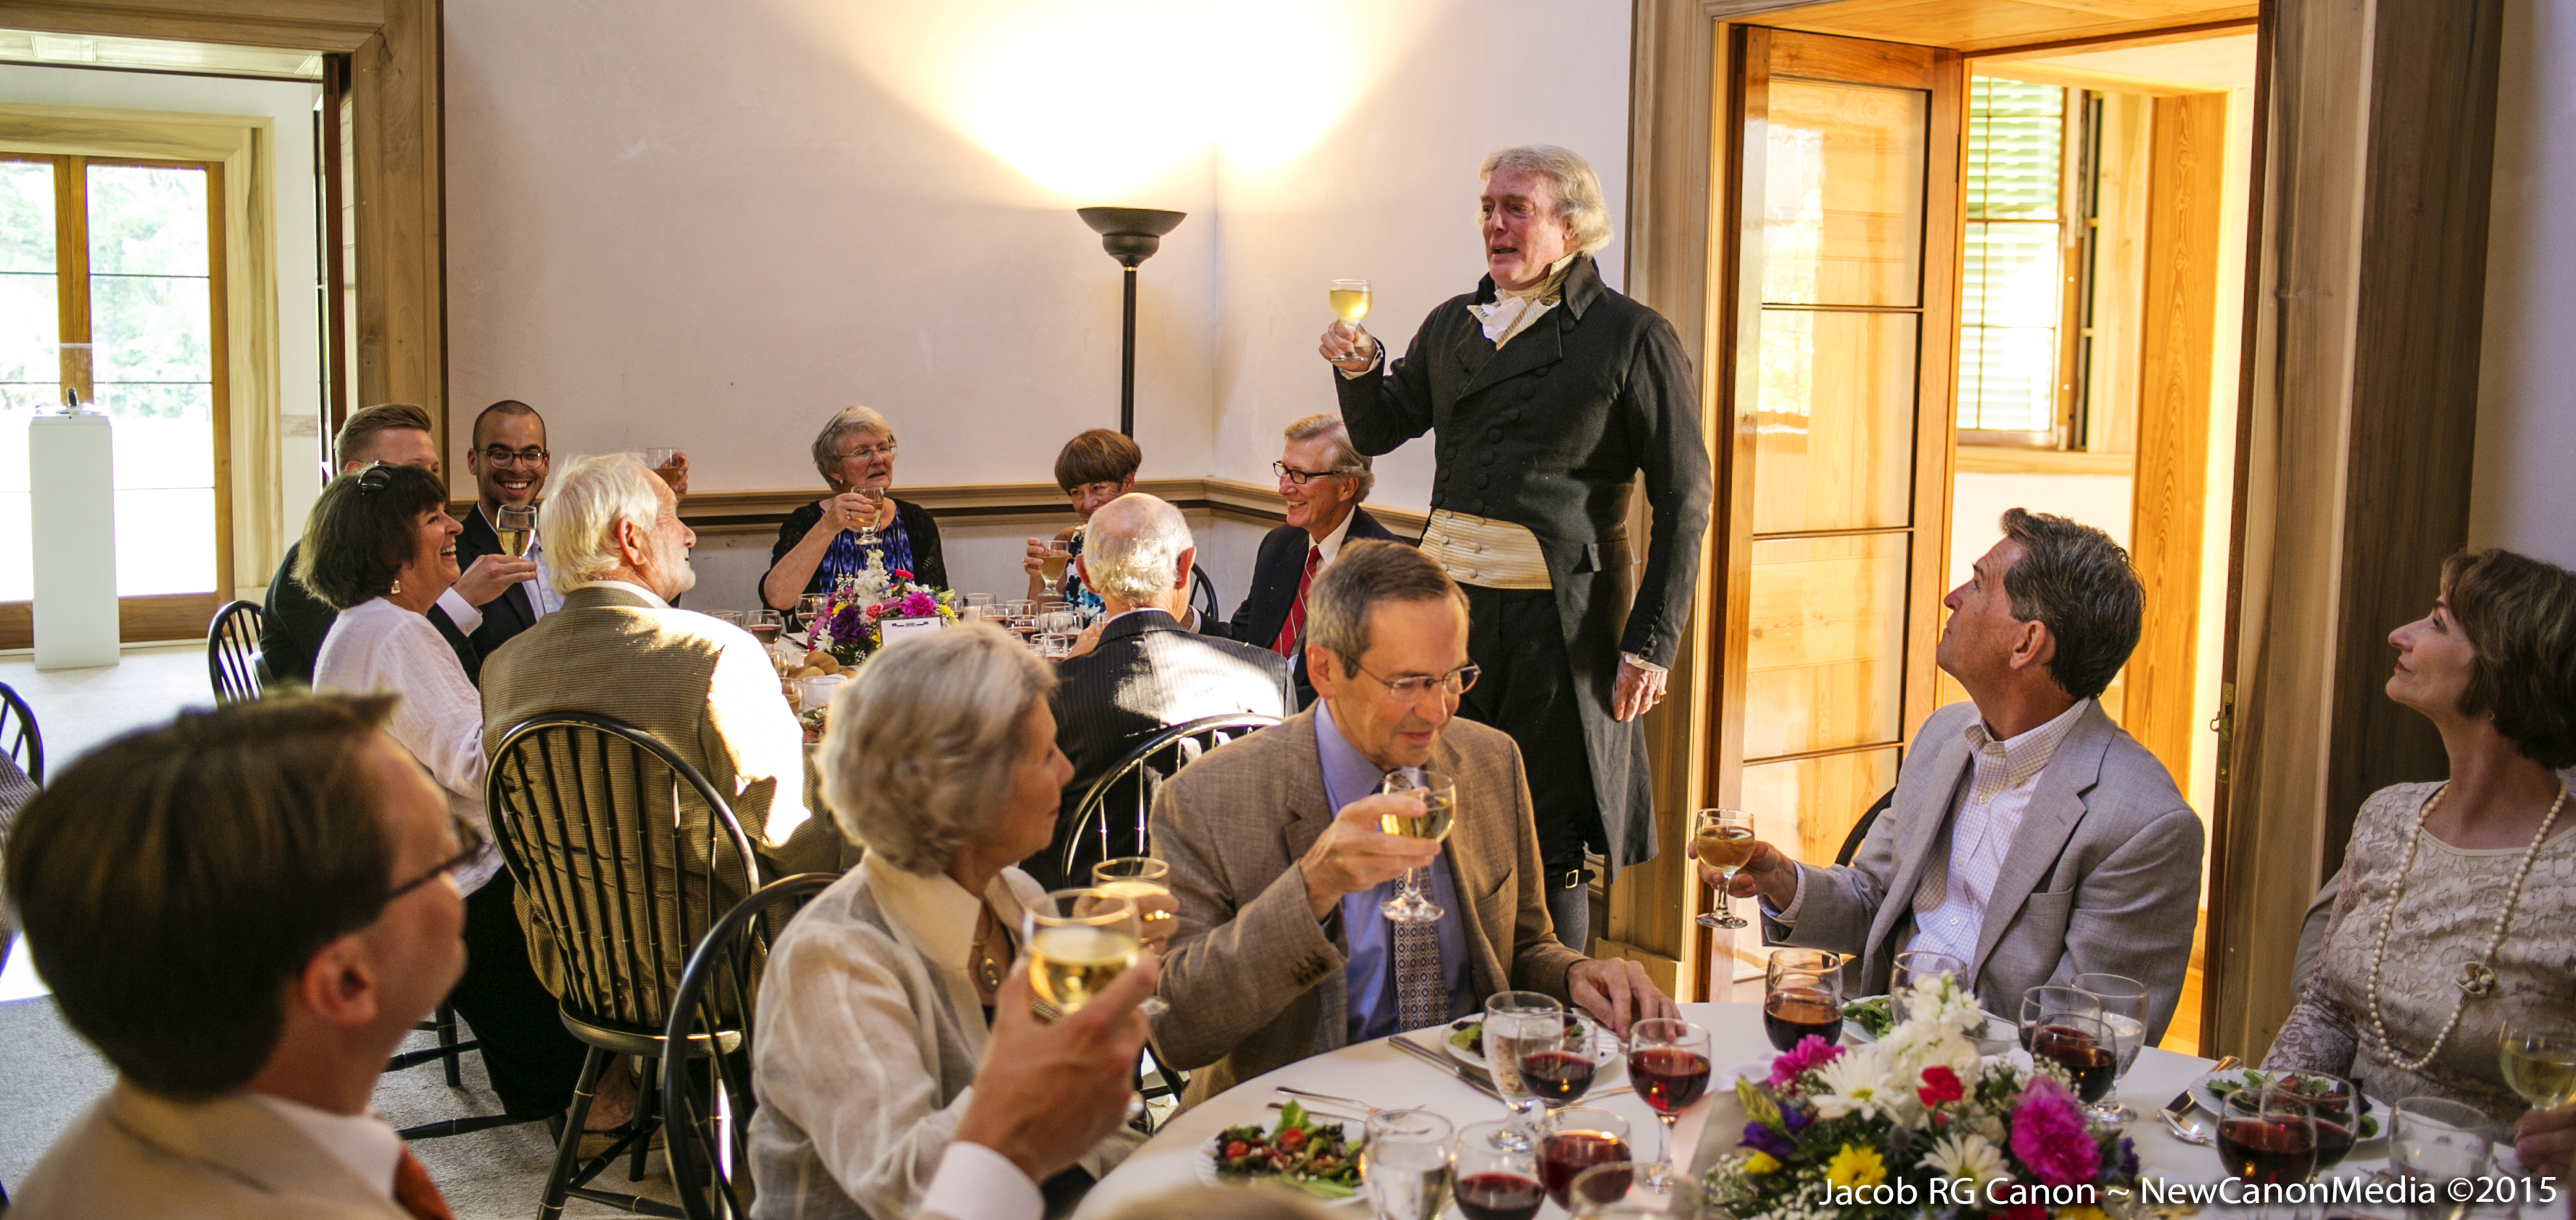 Jefferson Toast at Poplar Dinner.jpg